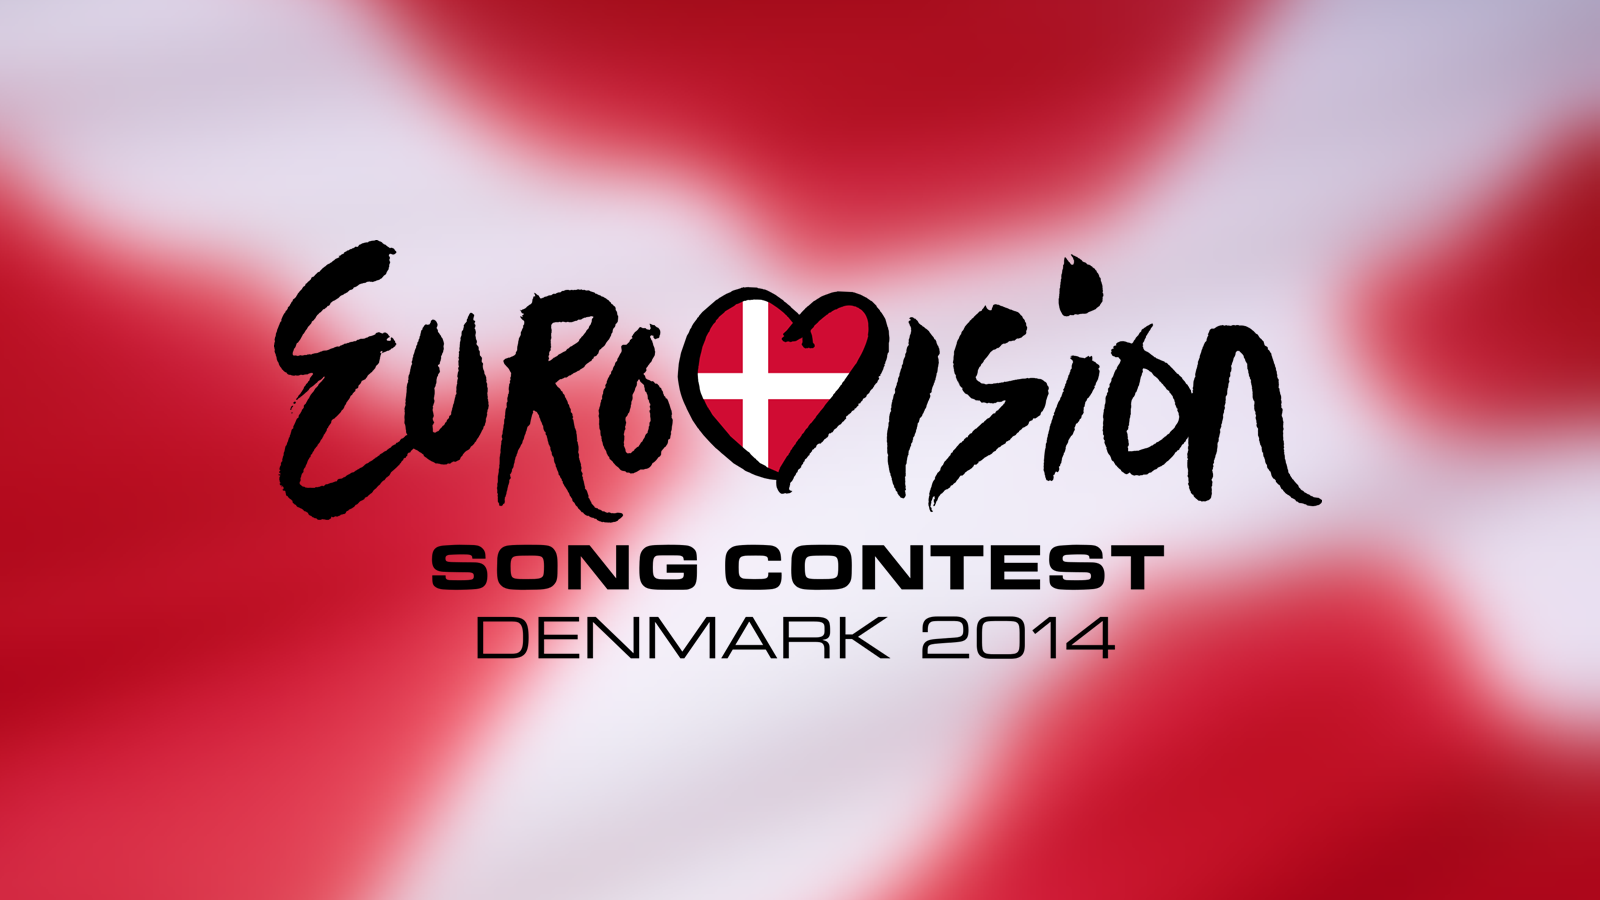 eurovision-2014.png